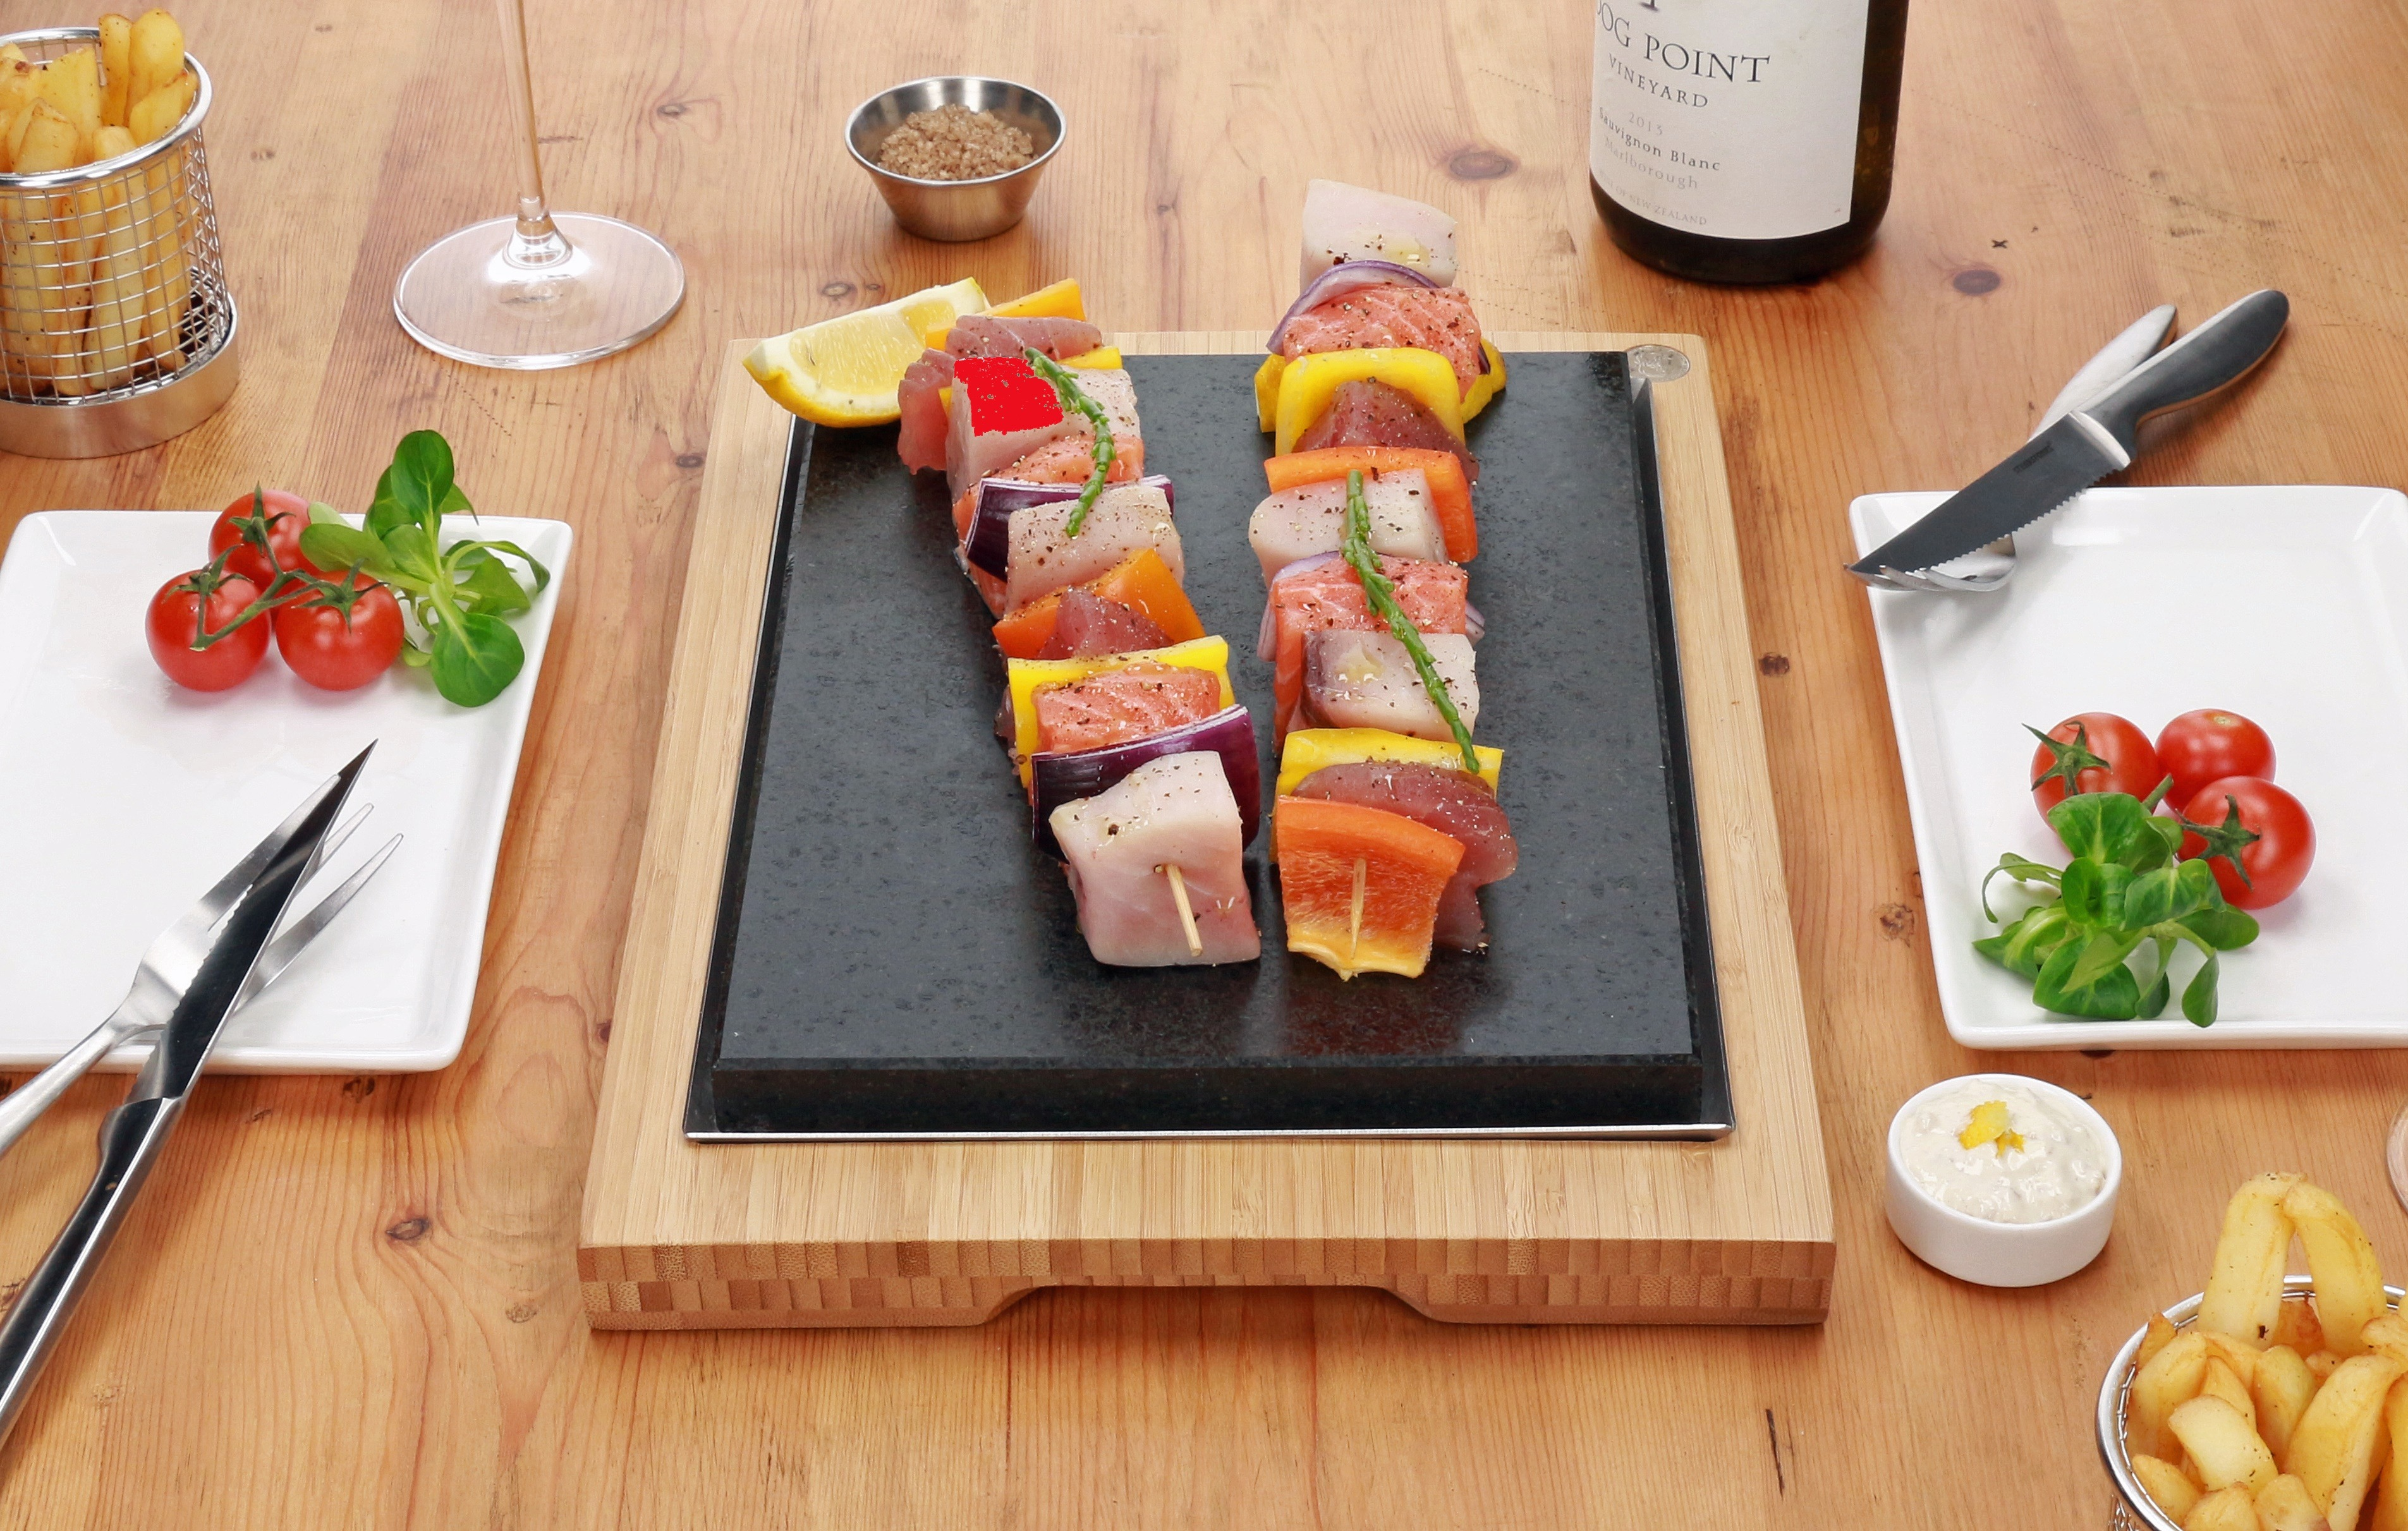 Fish Skewers Served on the Sizzling Stones. Featuring SteakStones Steak Sharer - the best Hot Stone Cooking Products Guaranteed